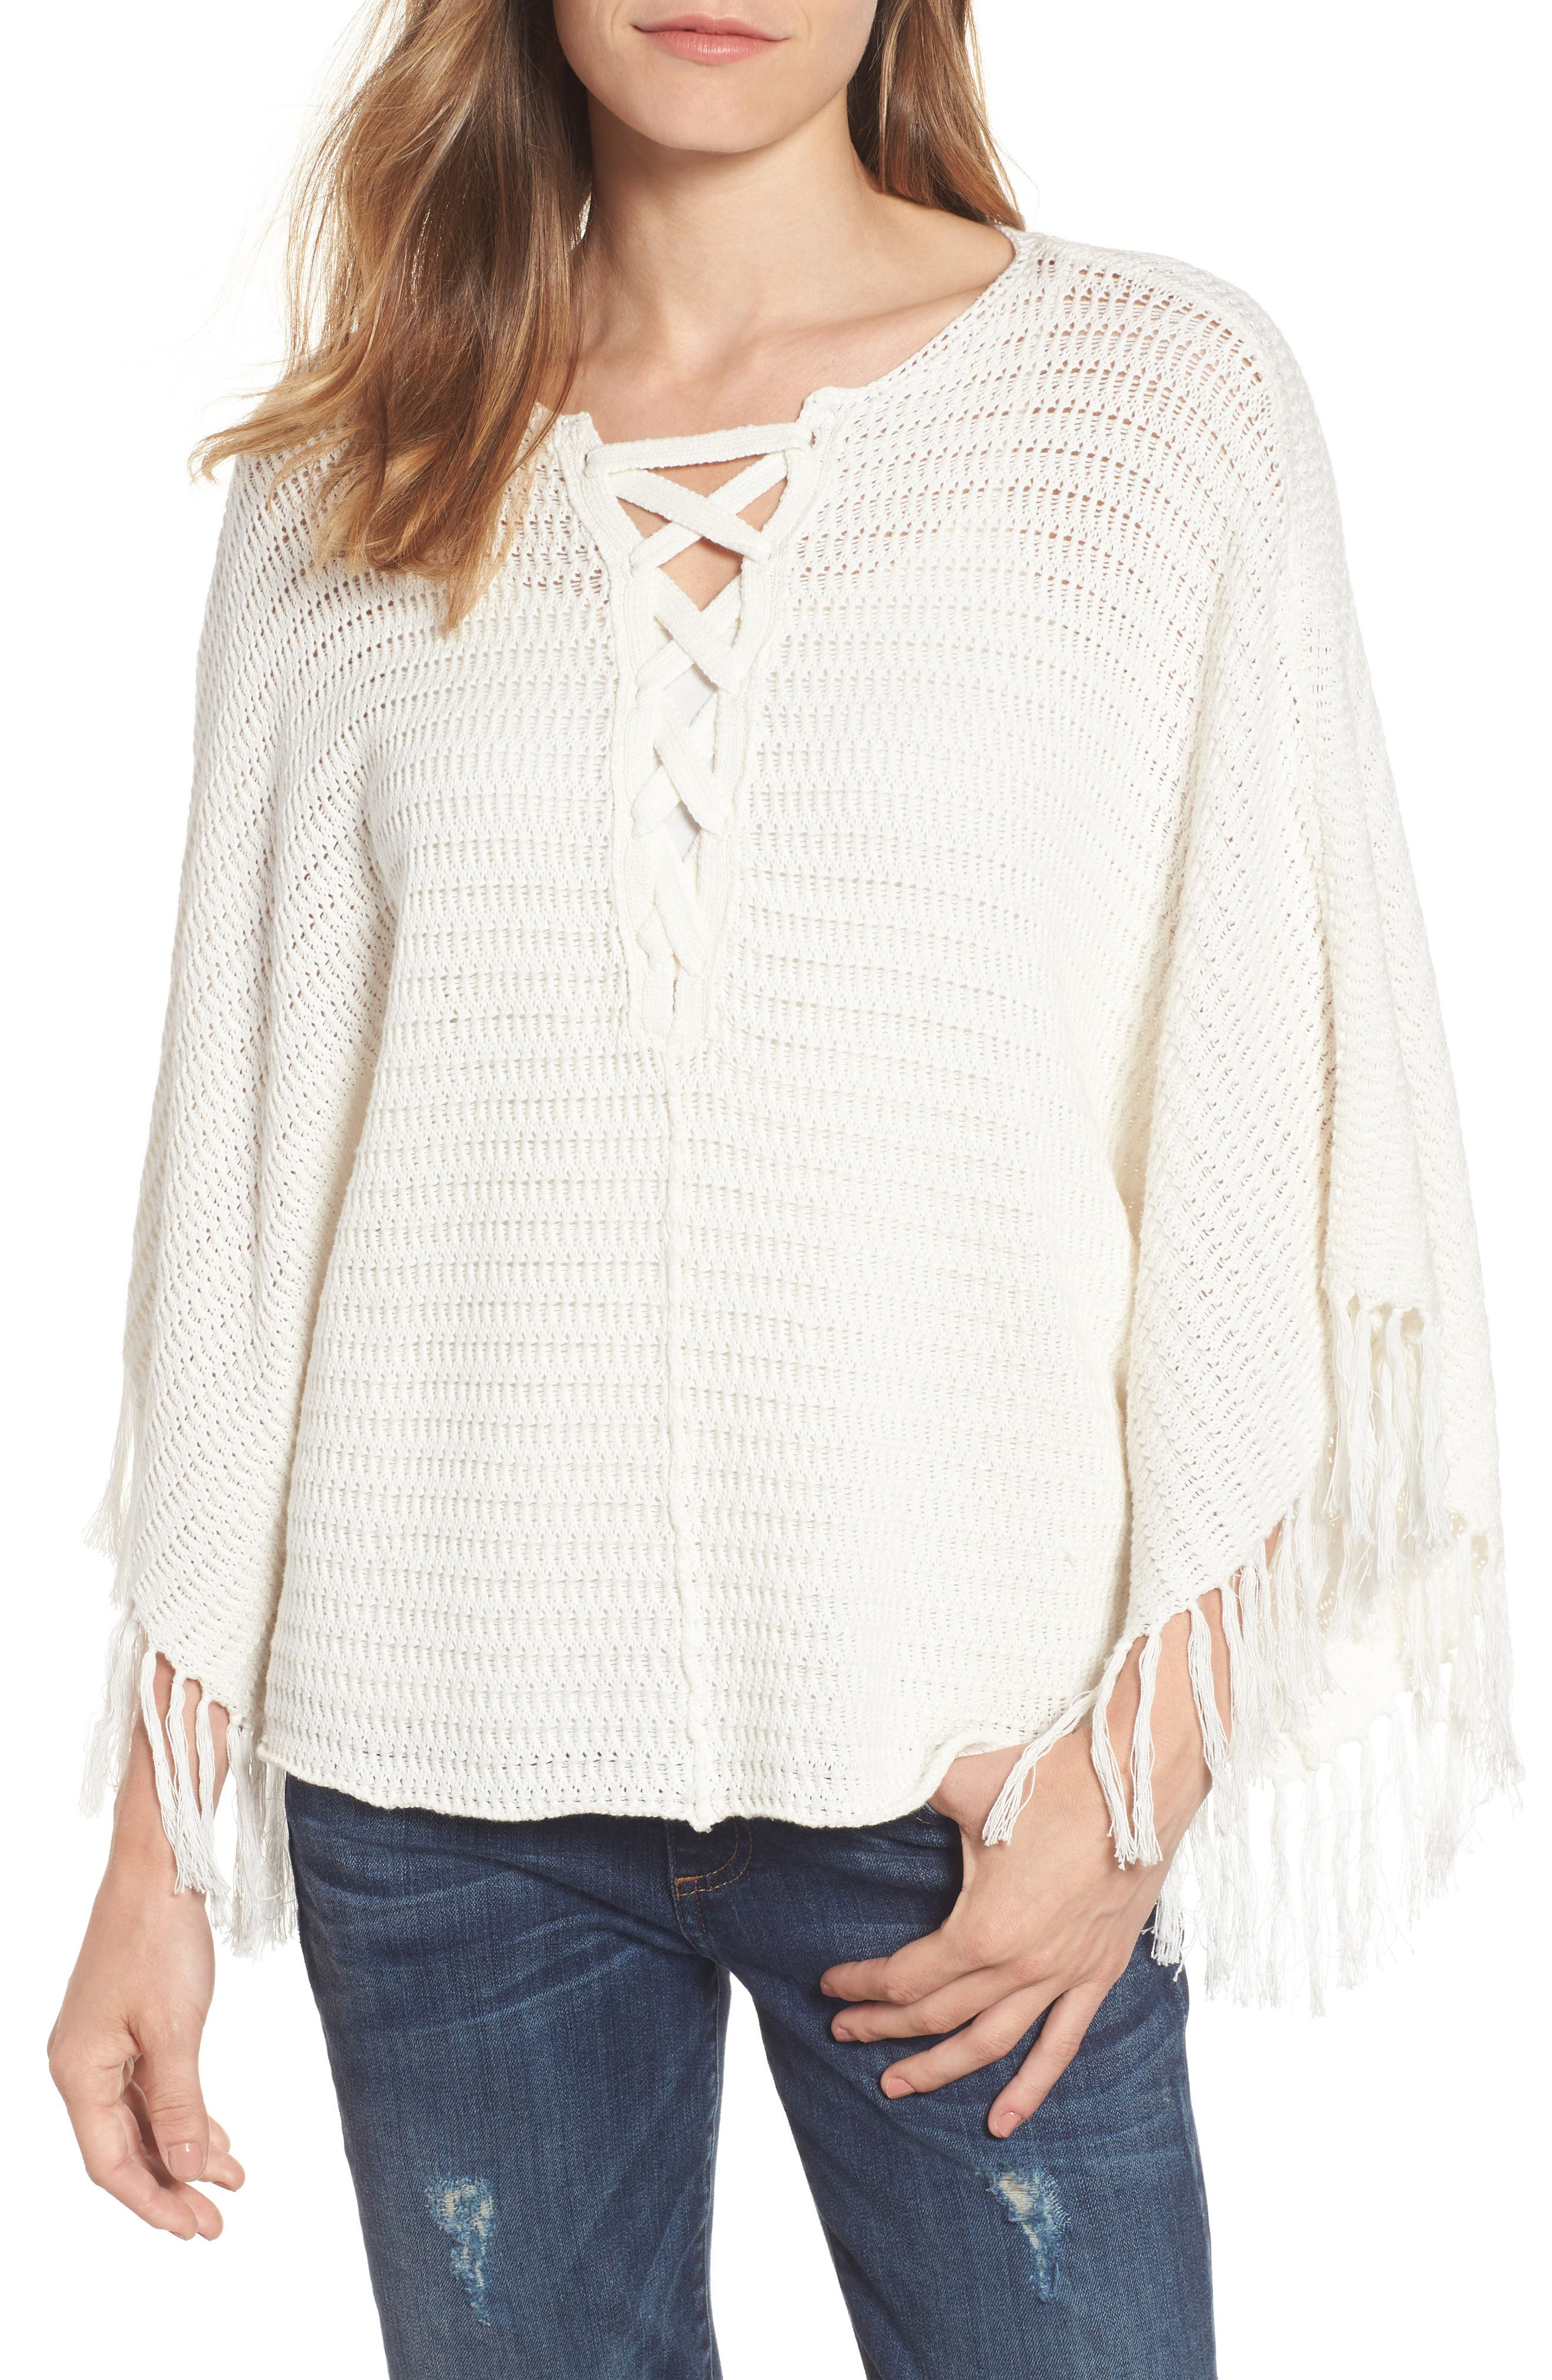 Velvet by Graham & Spencer Fringe Trim Crochet Top